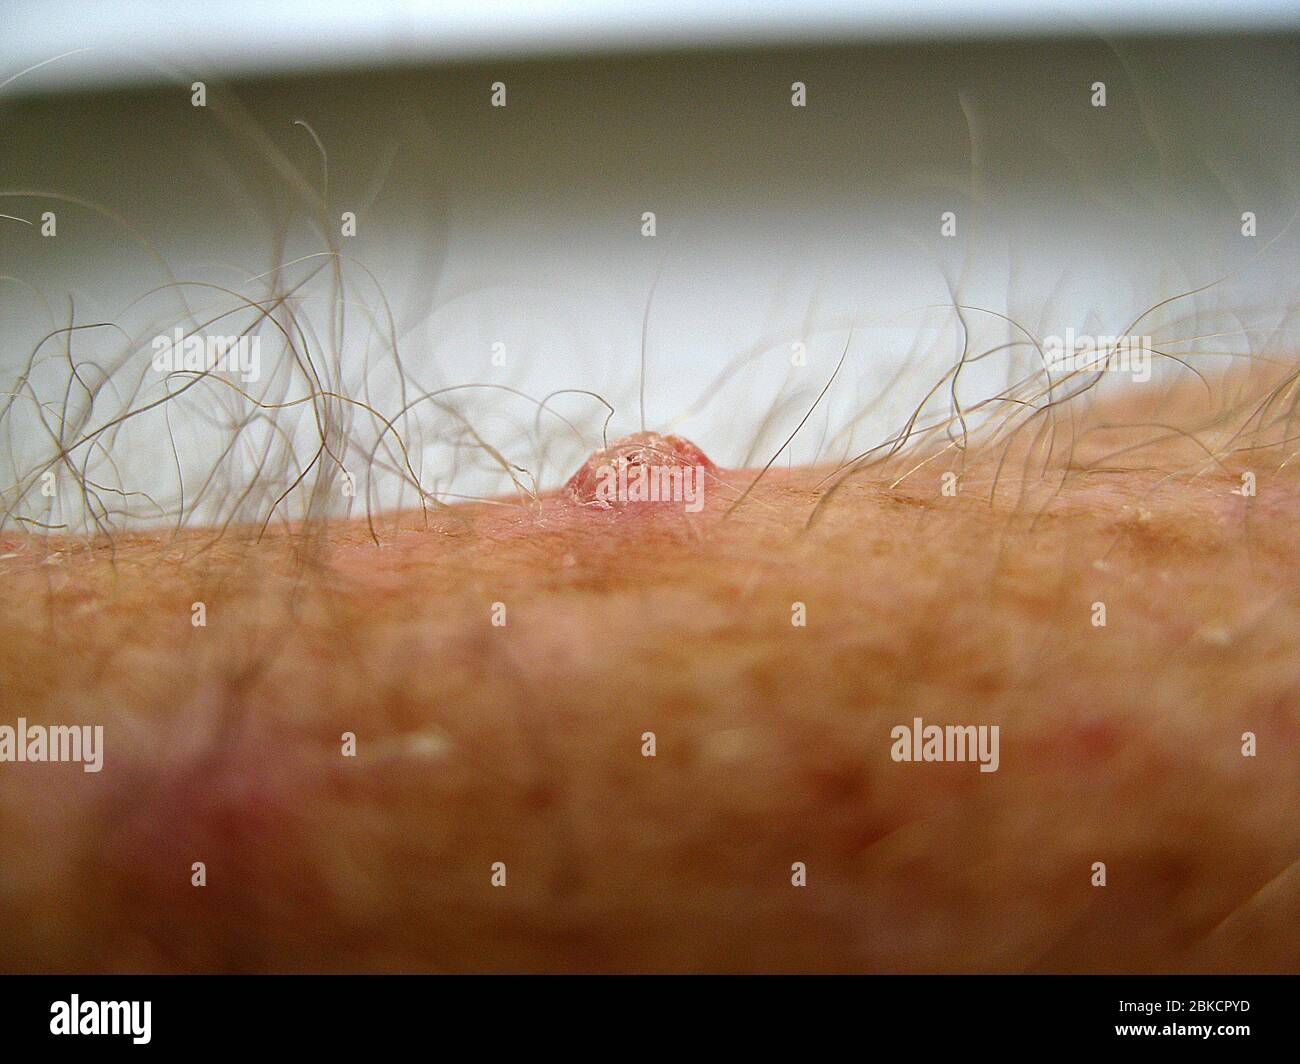 Skin Cancer Is Evident In This Side View Of A Squamous Cell Carcinoma On The Hairy Arm Of A Caucasian Man Most Often Caused By Years Of Exposure To The Sun S Ultraviolet